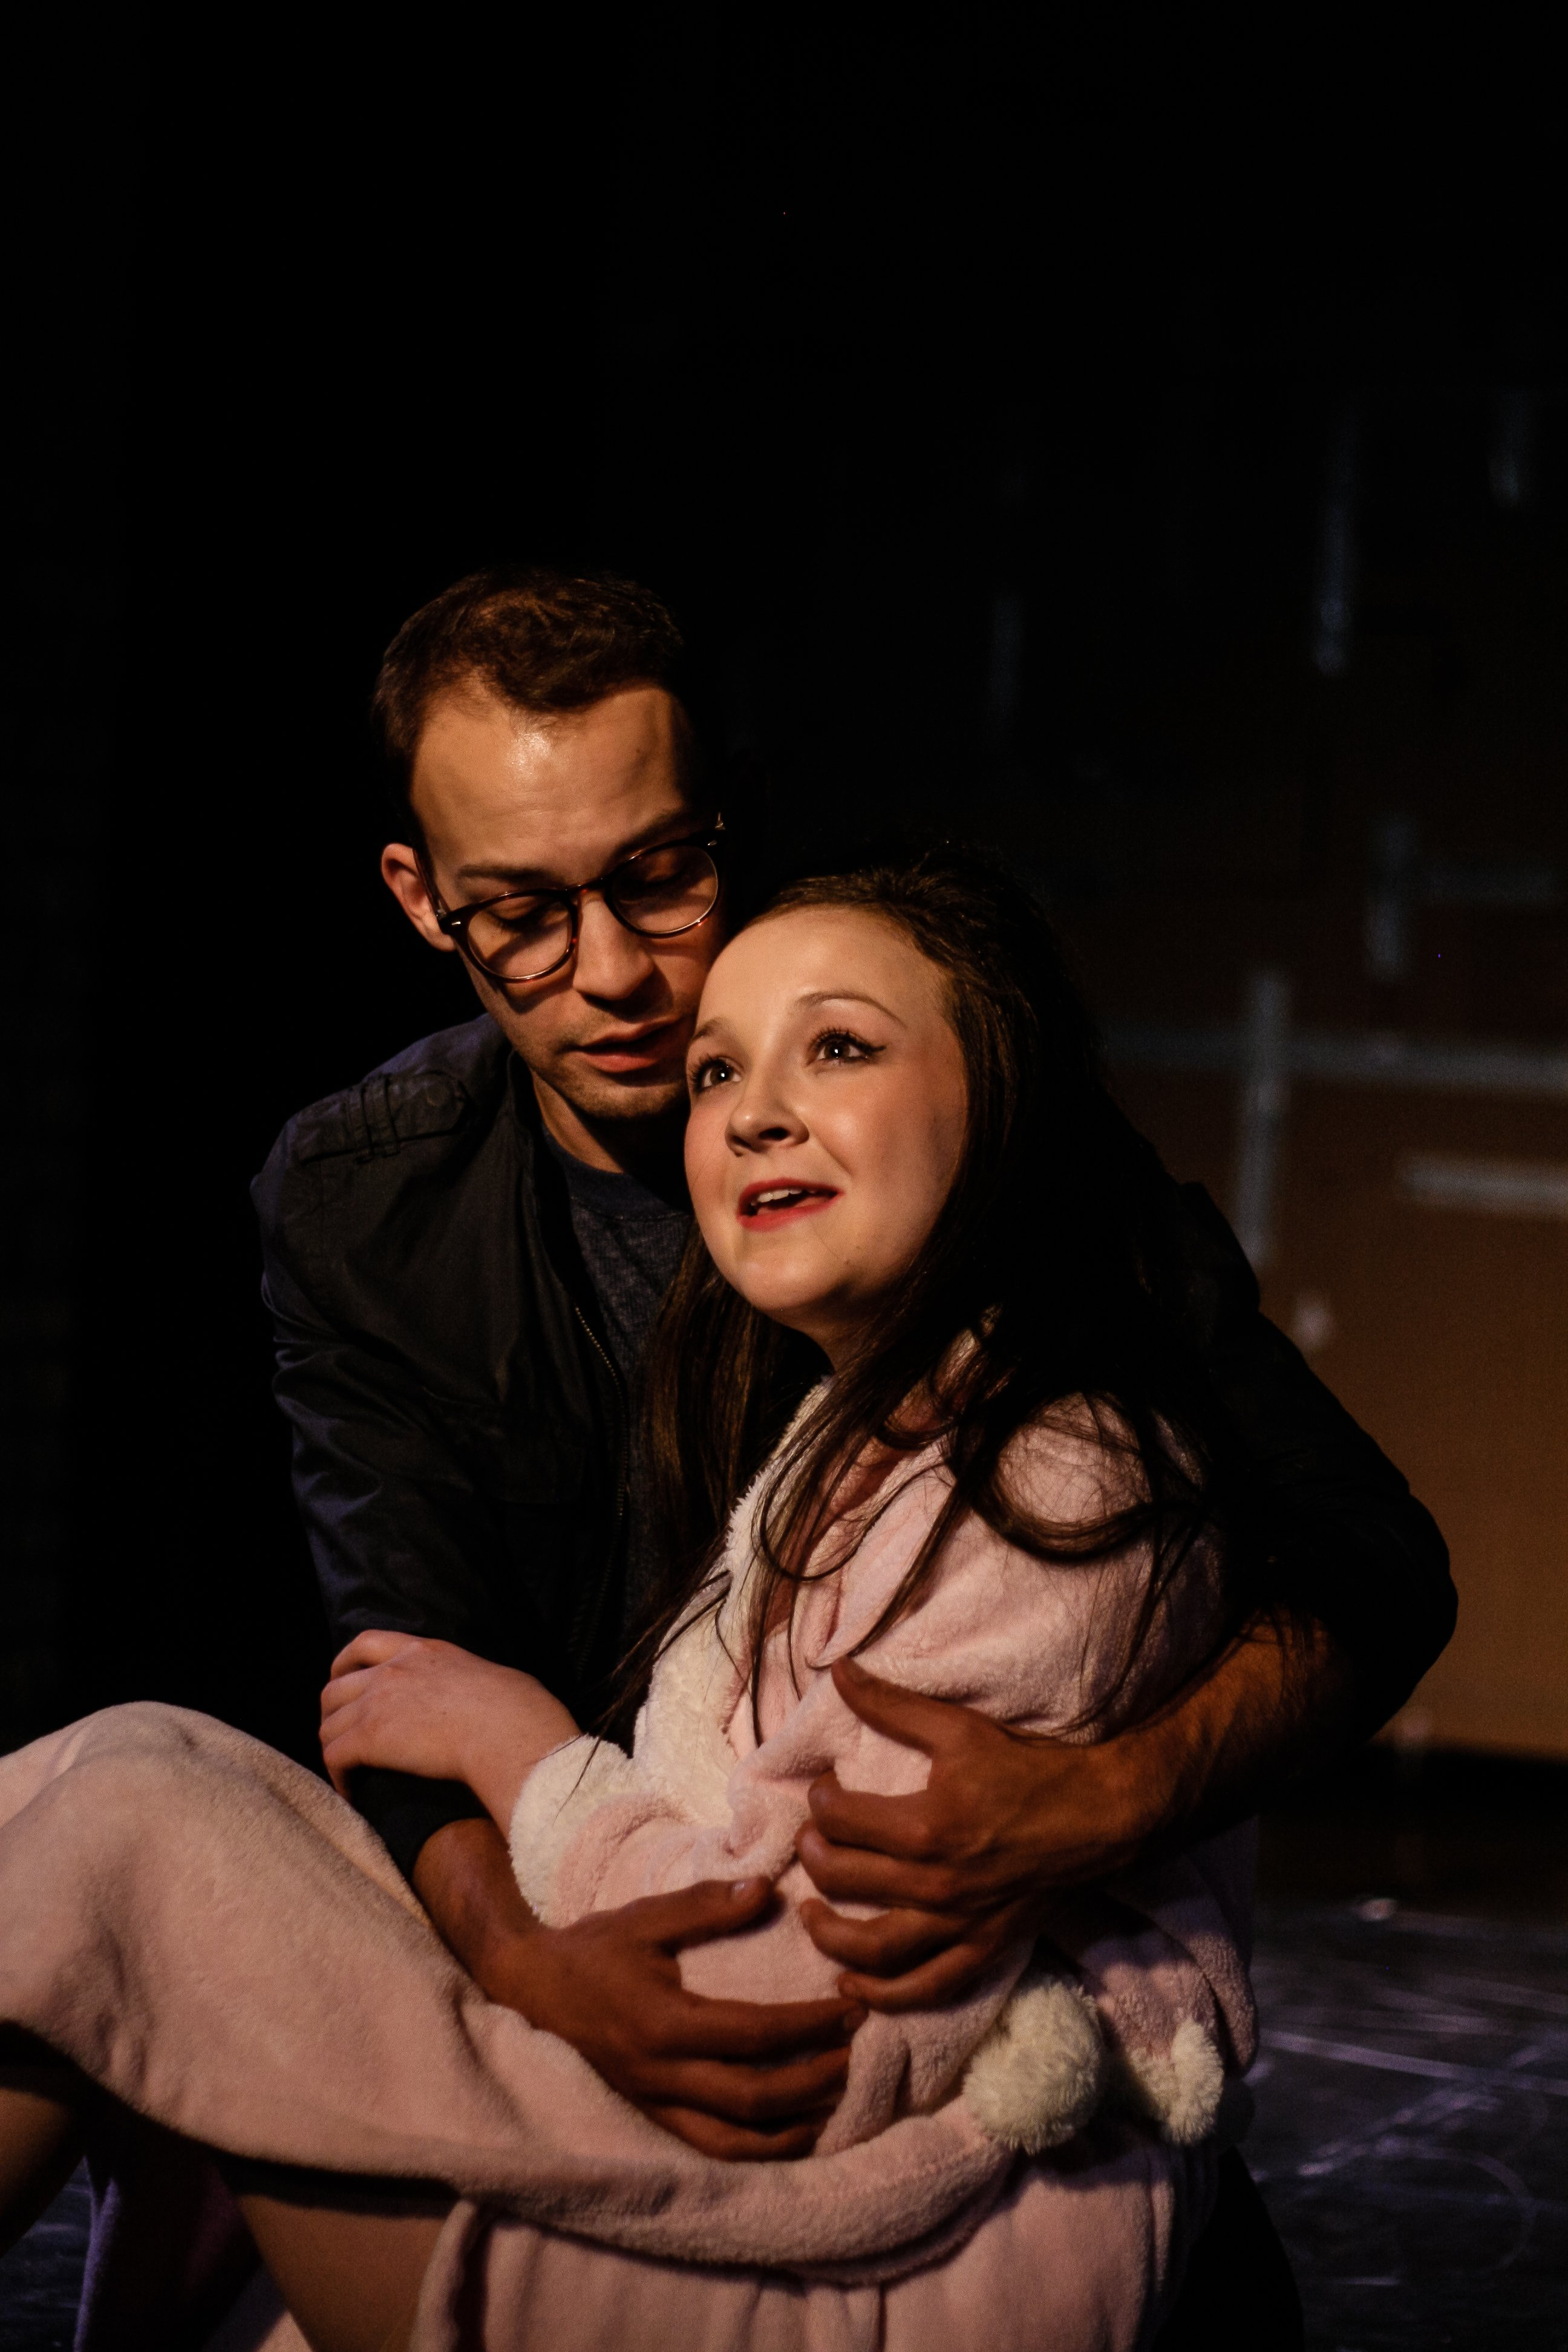 Seymour (Grant Sorenson) and Audrey (Maeve Moynihan) in 7th House Theater's production of Little Shop of Horrors; photography by Kelly Nelson